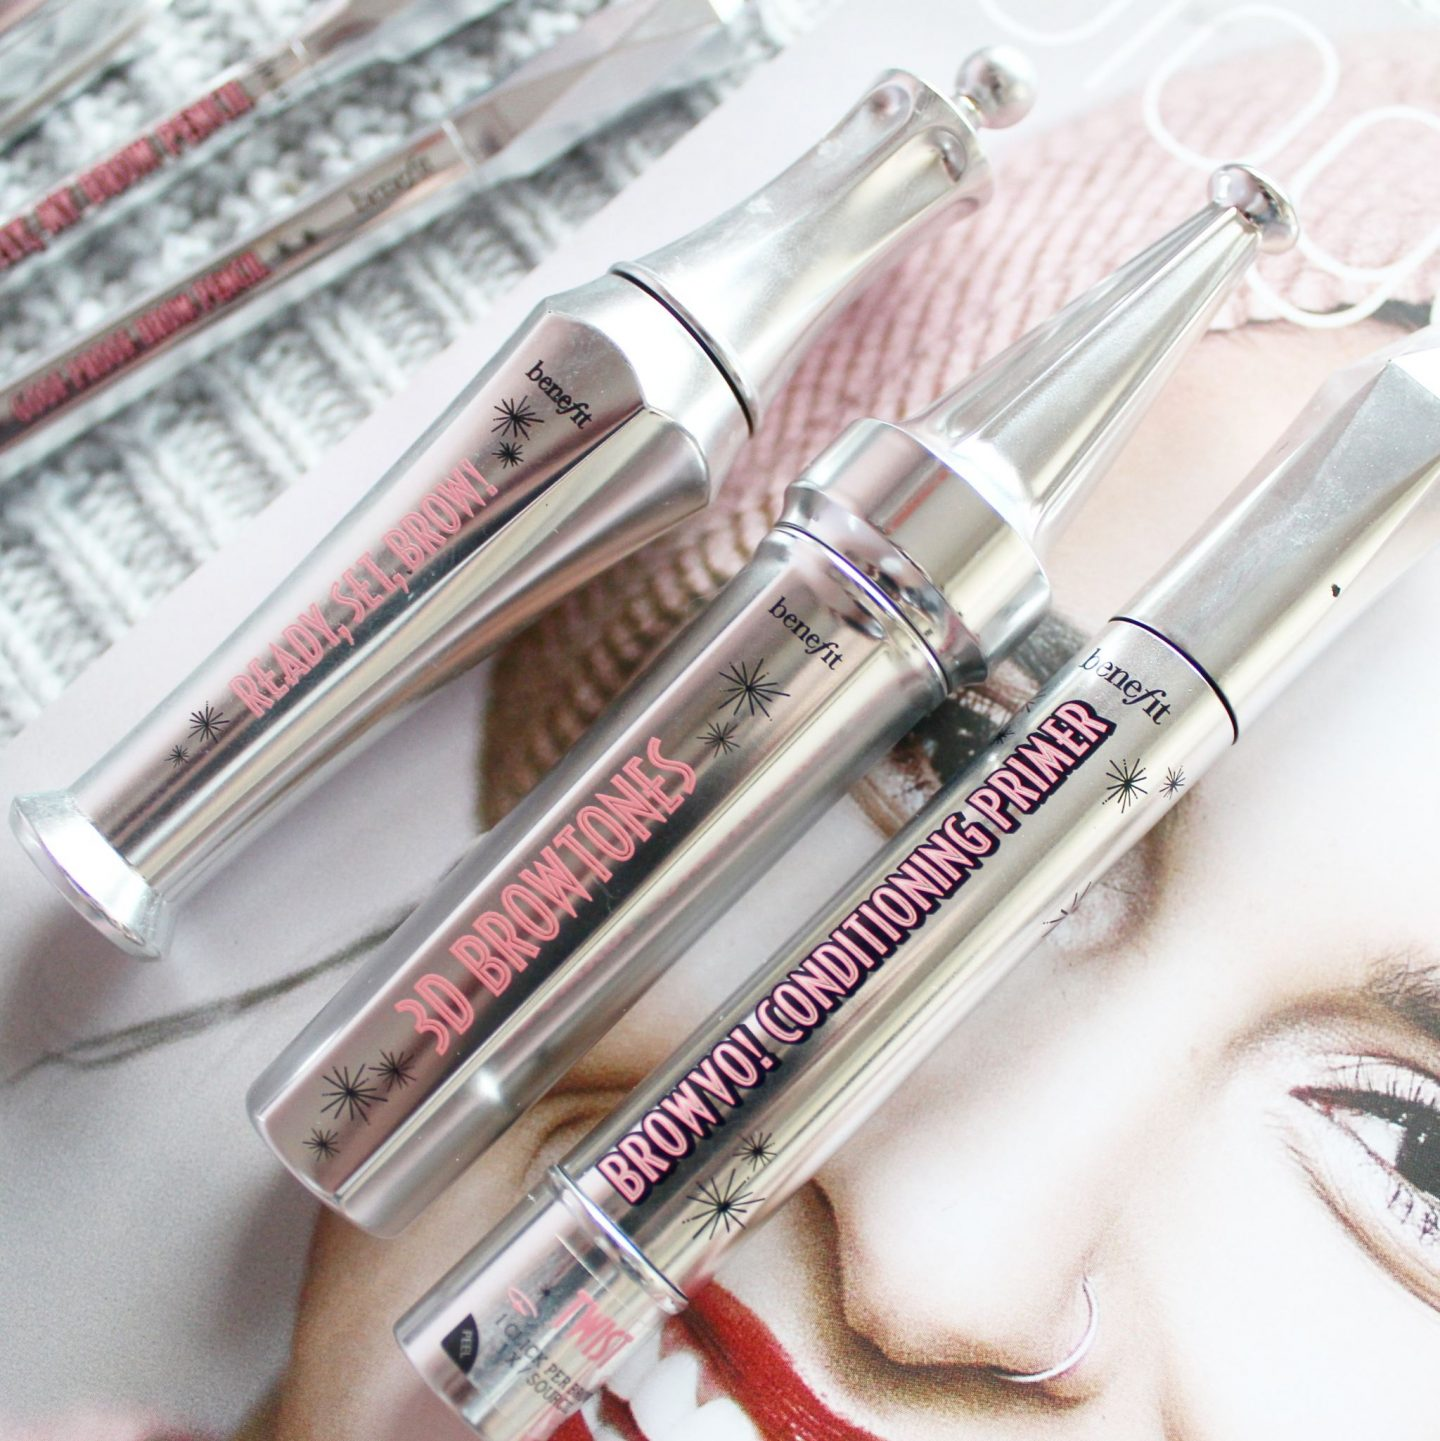 The Benefit Brow Collection at Debenhams | Foolproof Brow Powder